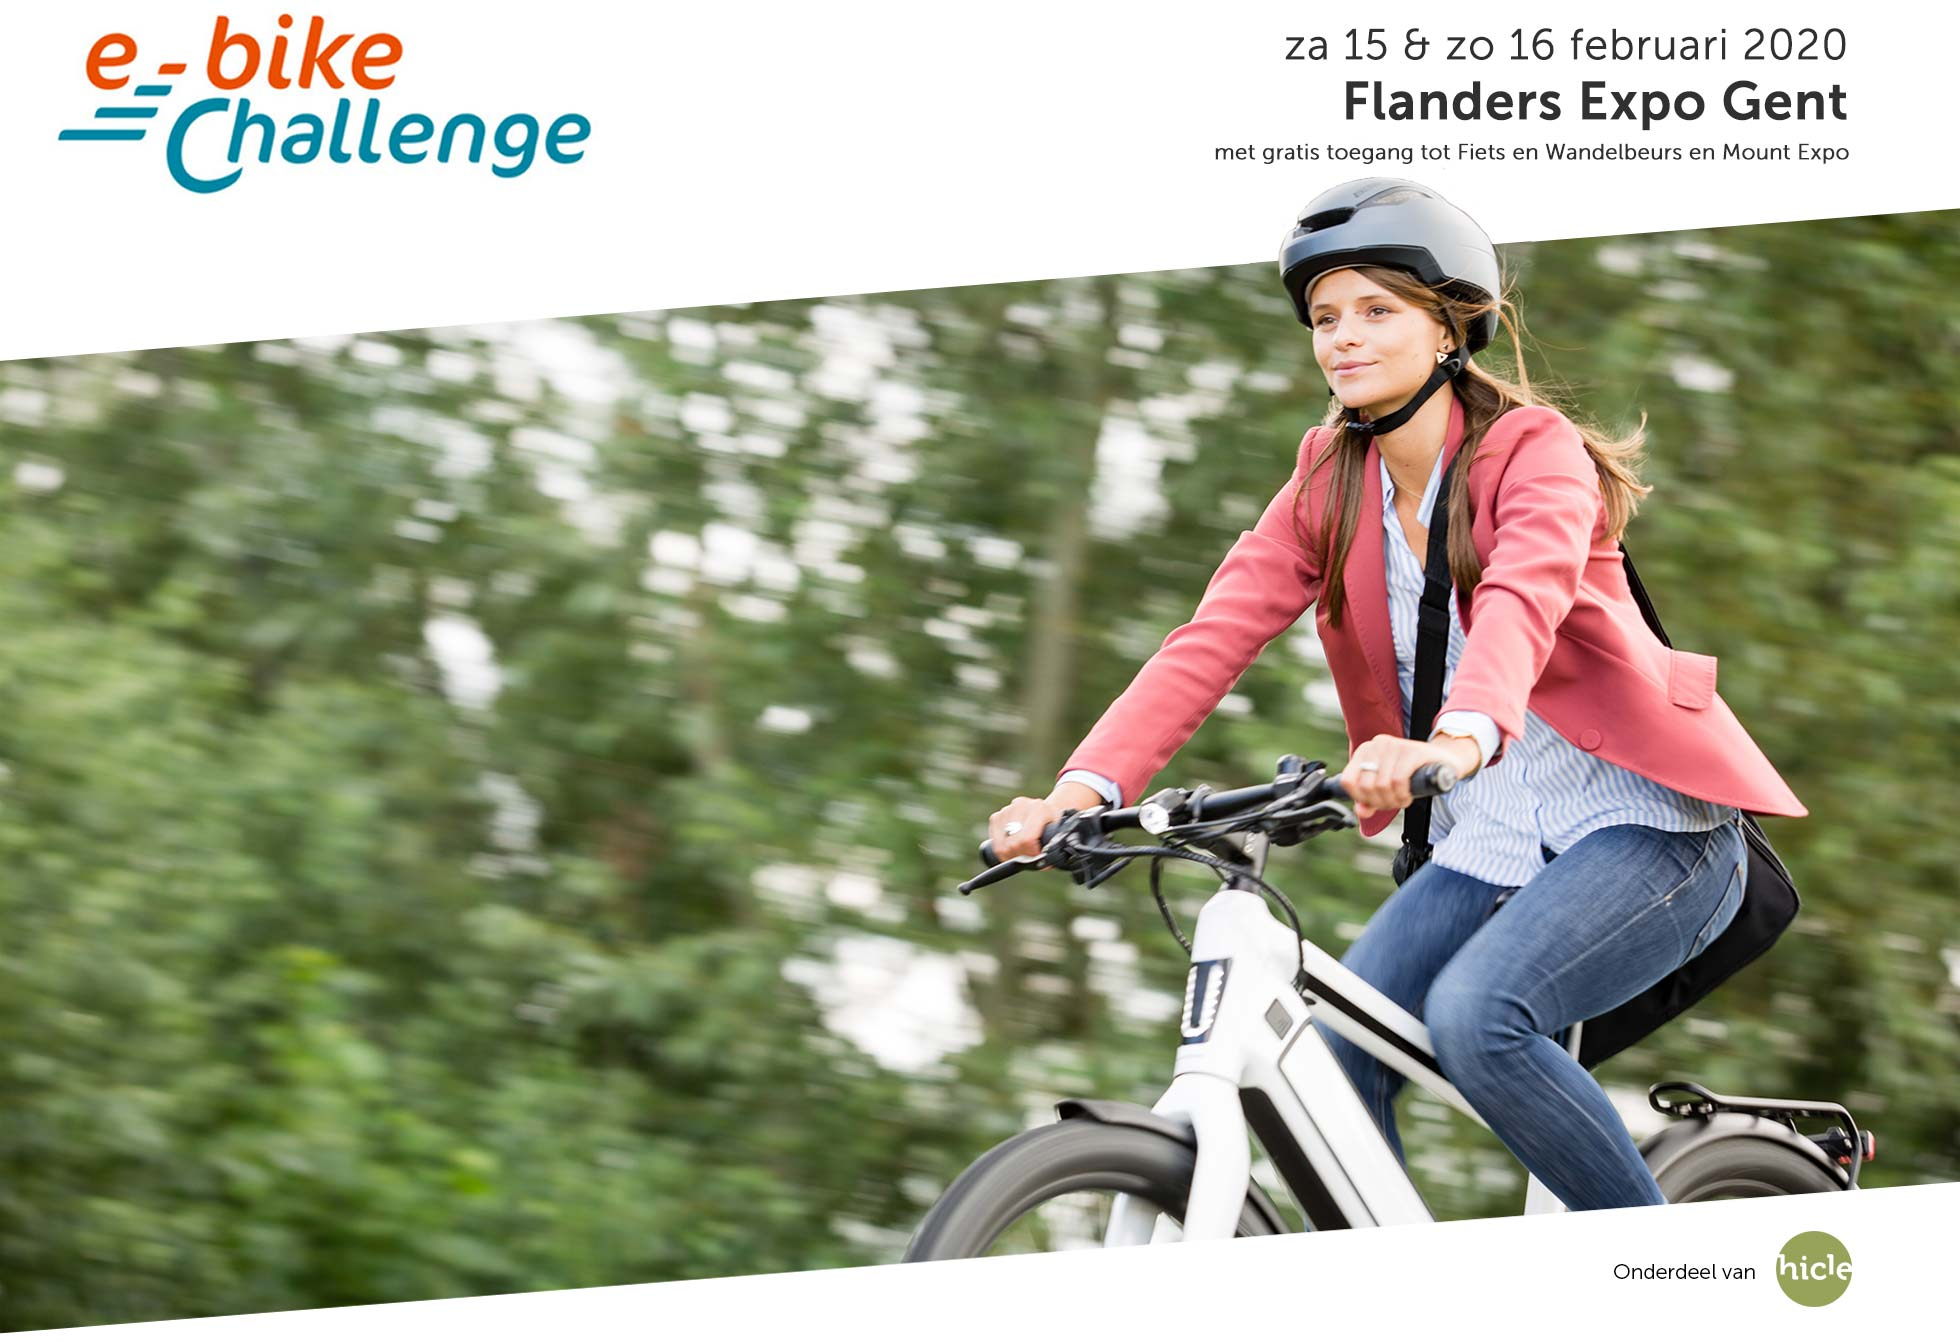 header e-bike challange belgie 2020